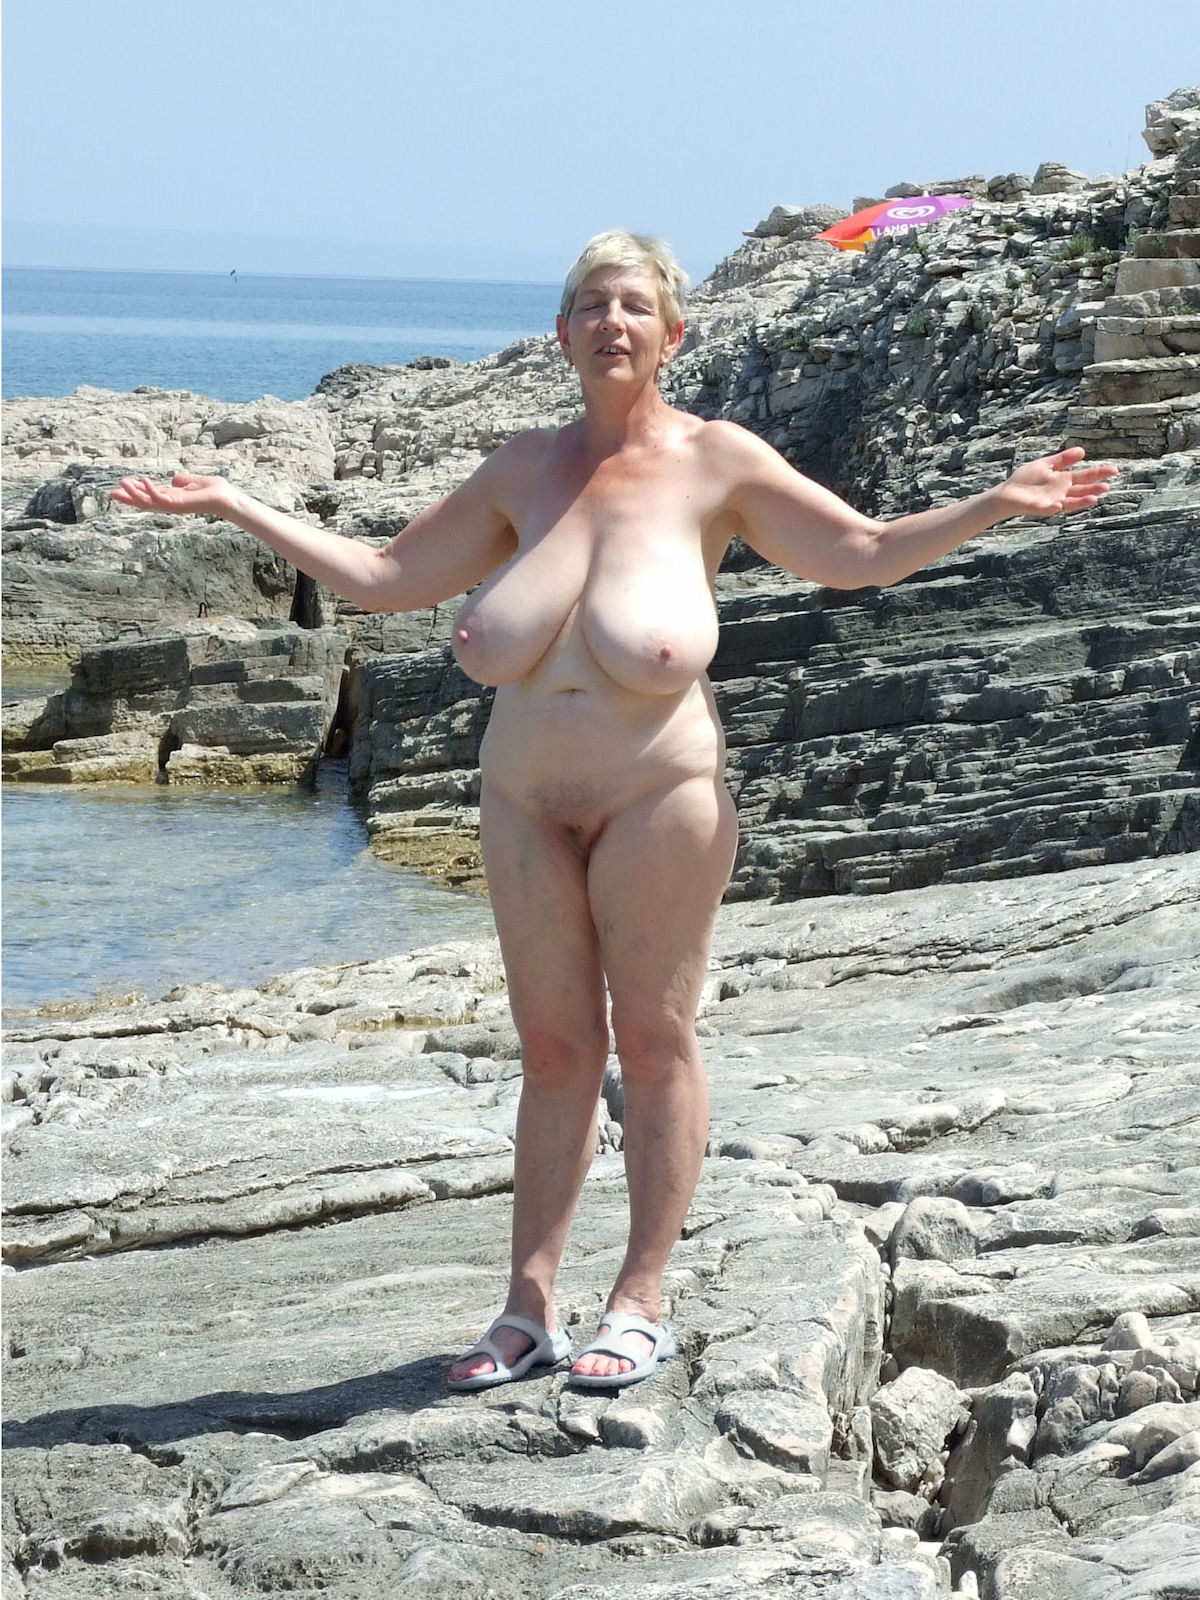 old lady with big tits porn naked gallery - aise